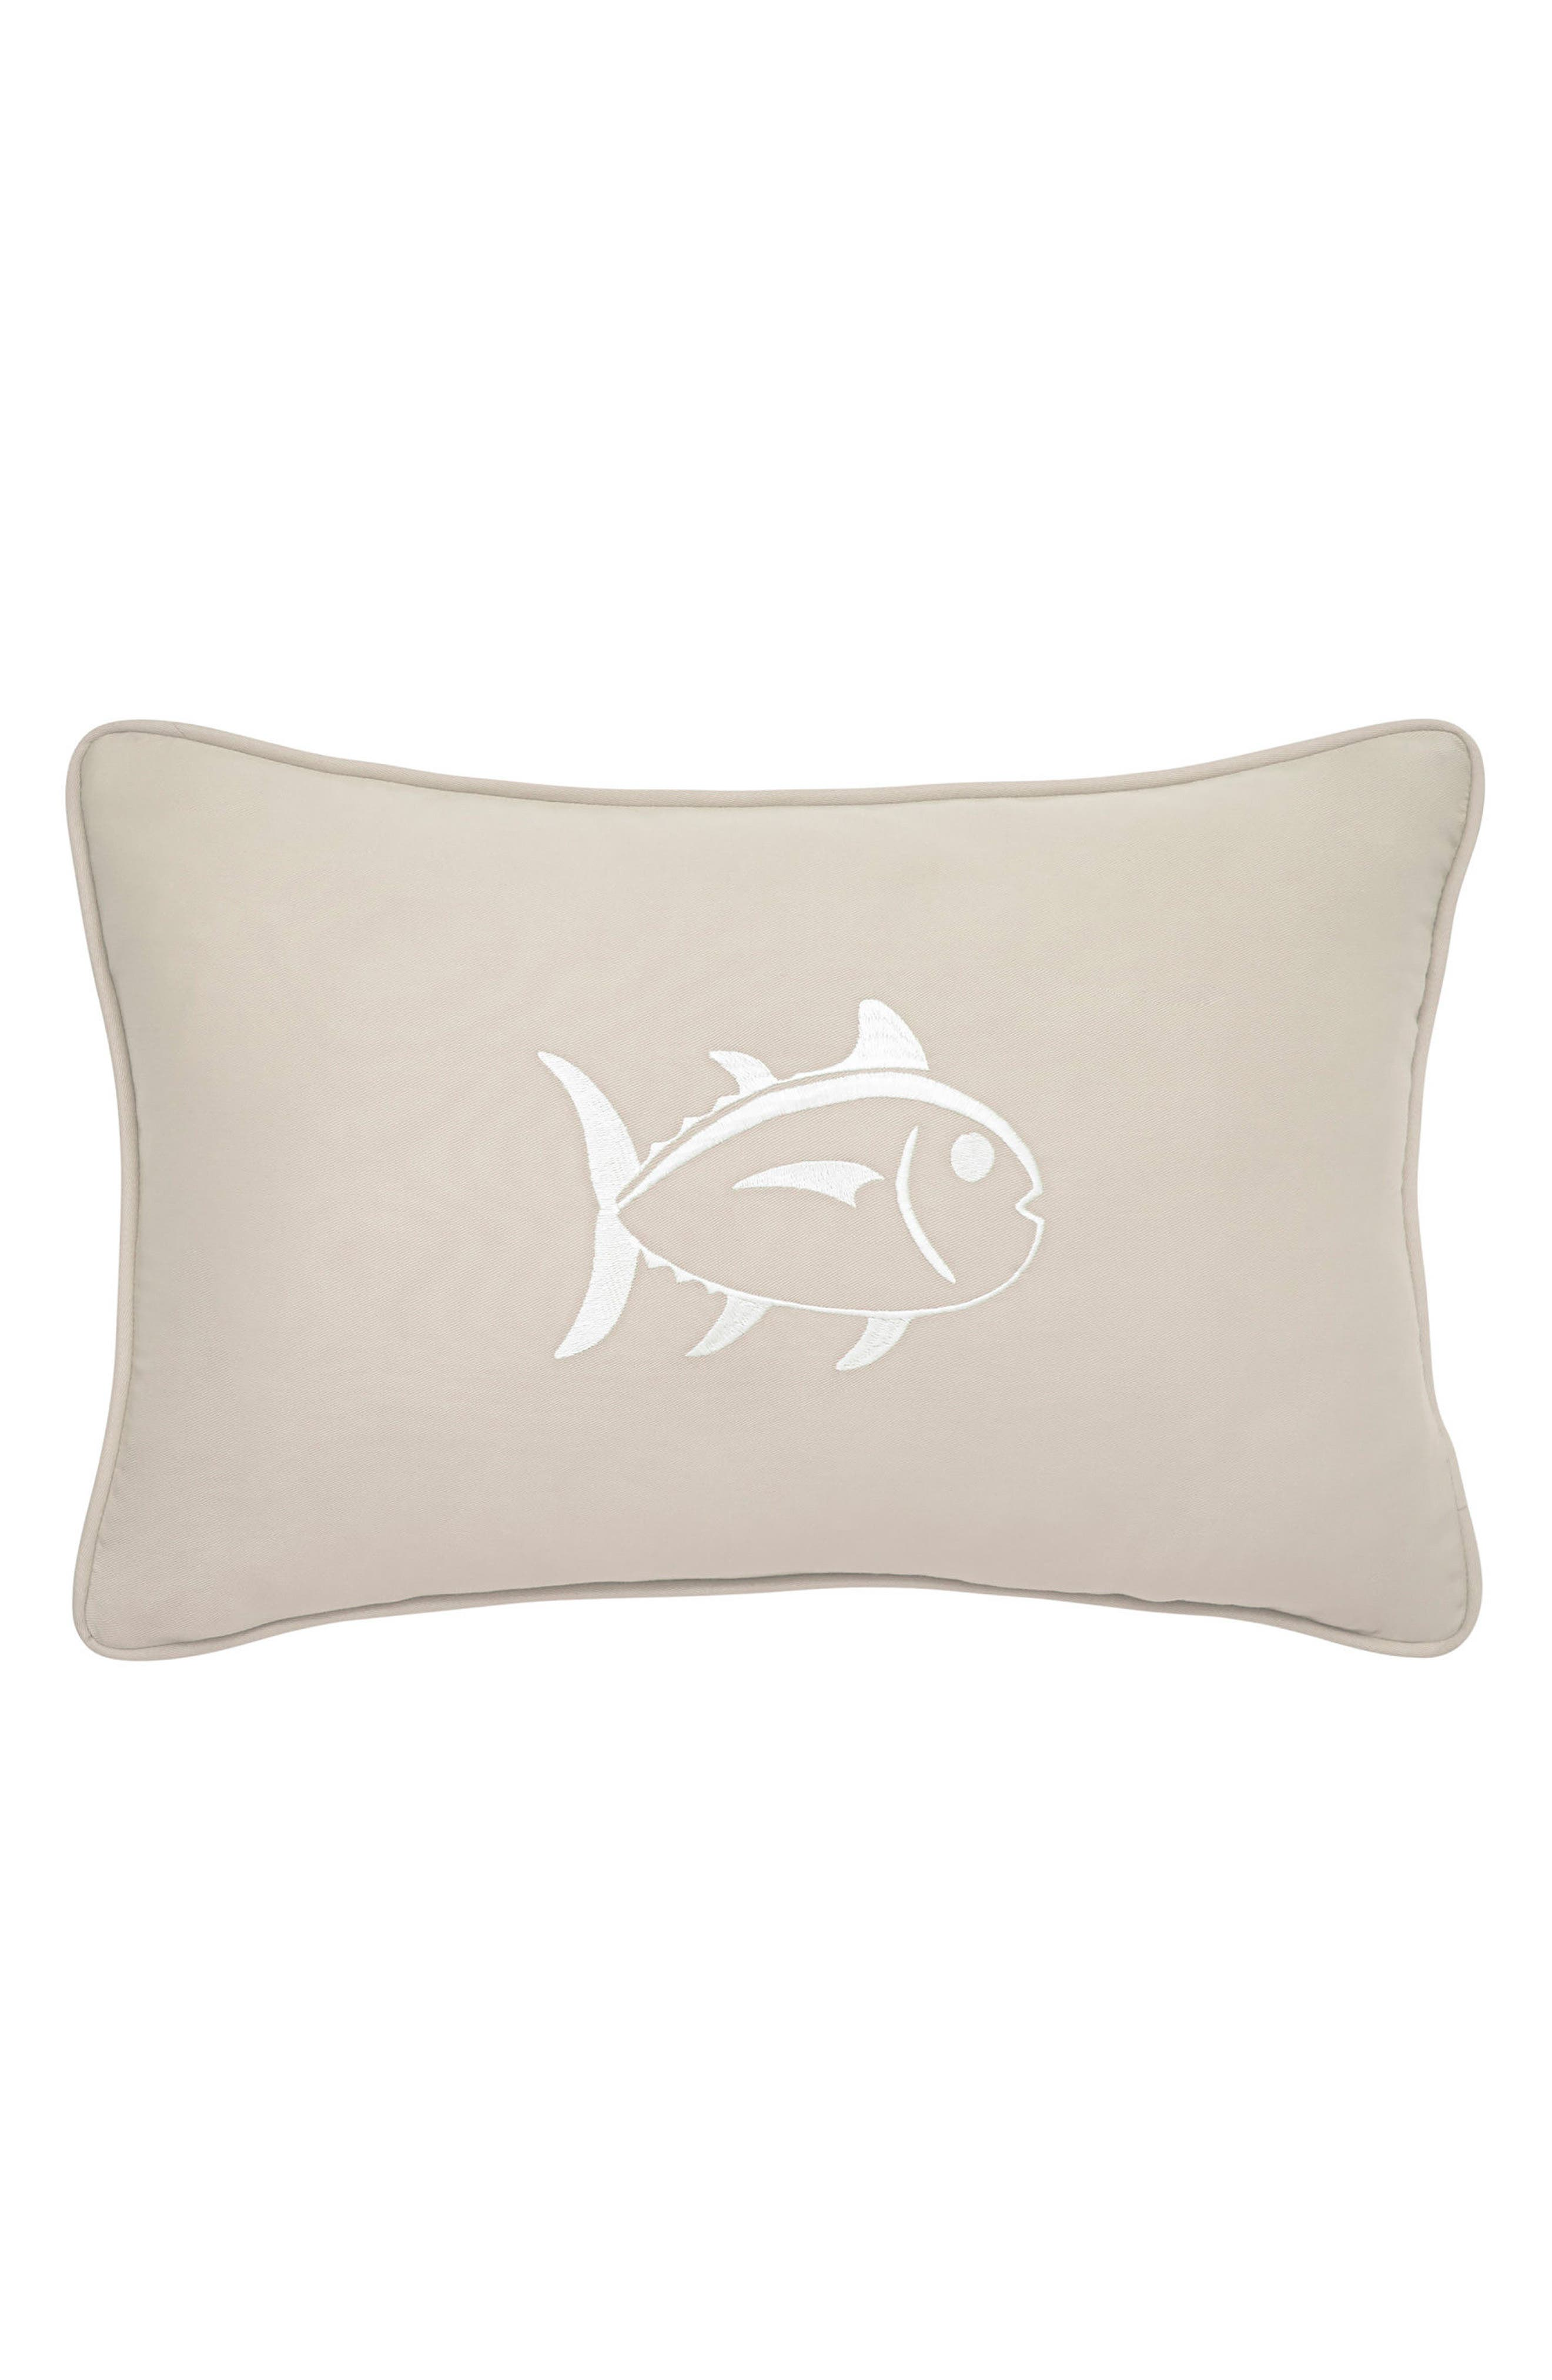 Southern Tide Skipjack Fish Accent Pillow